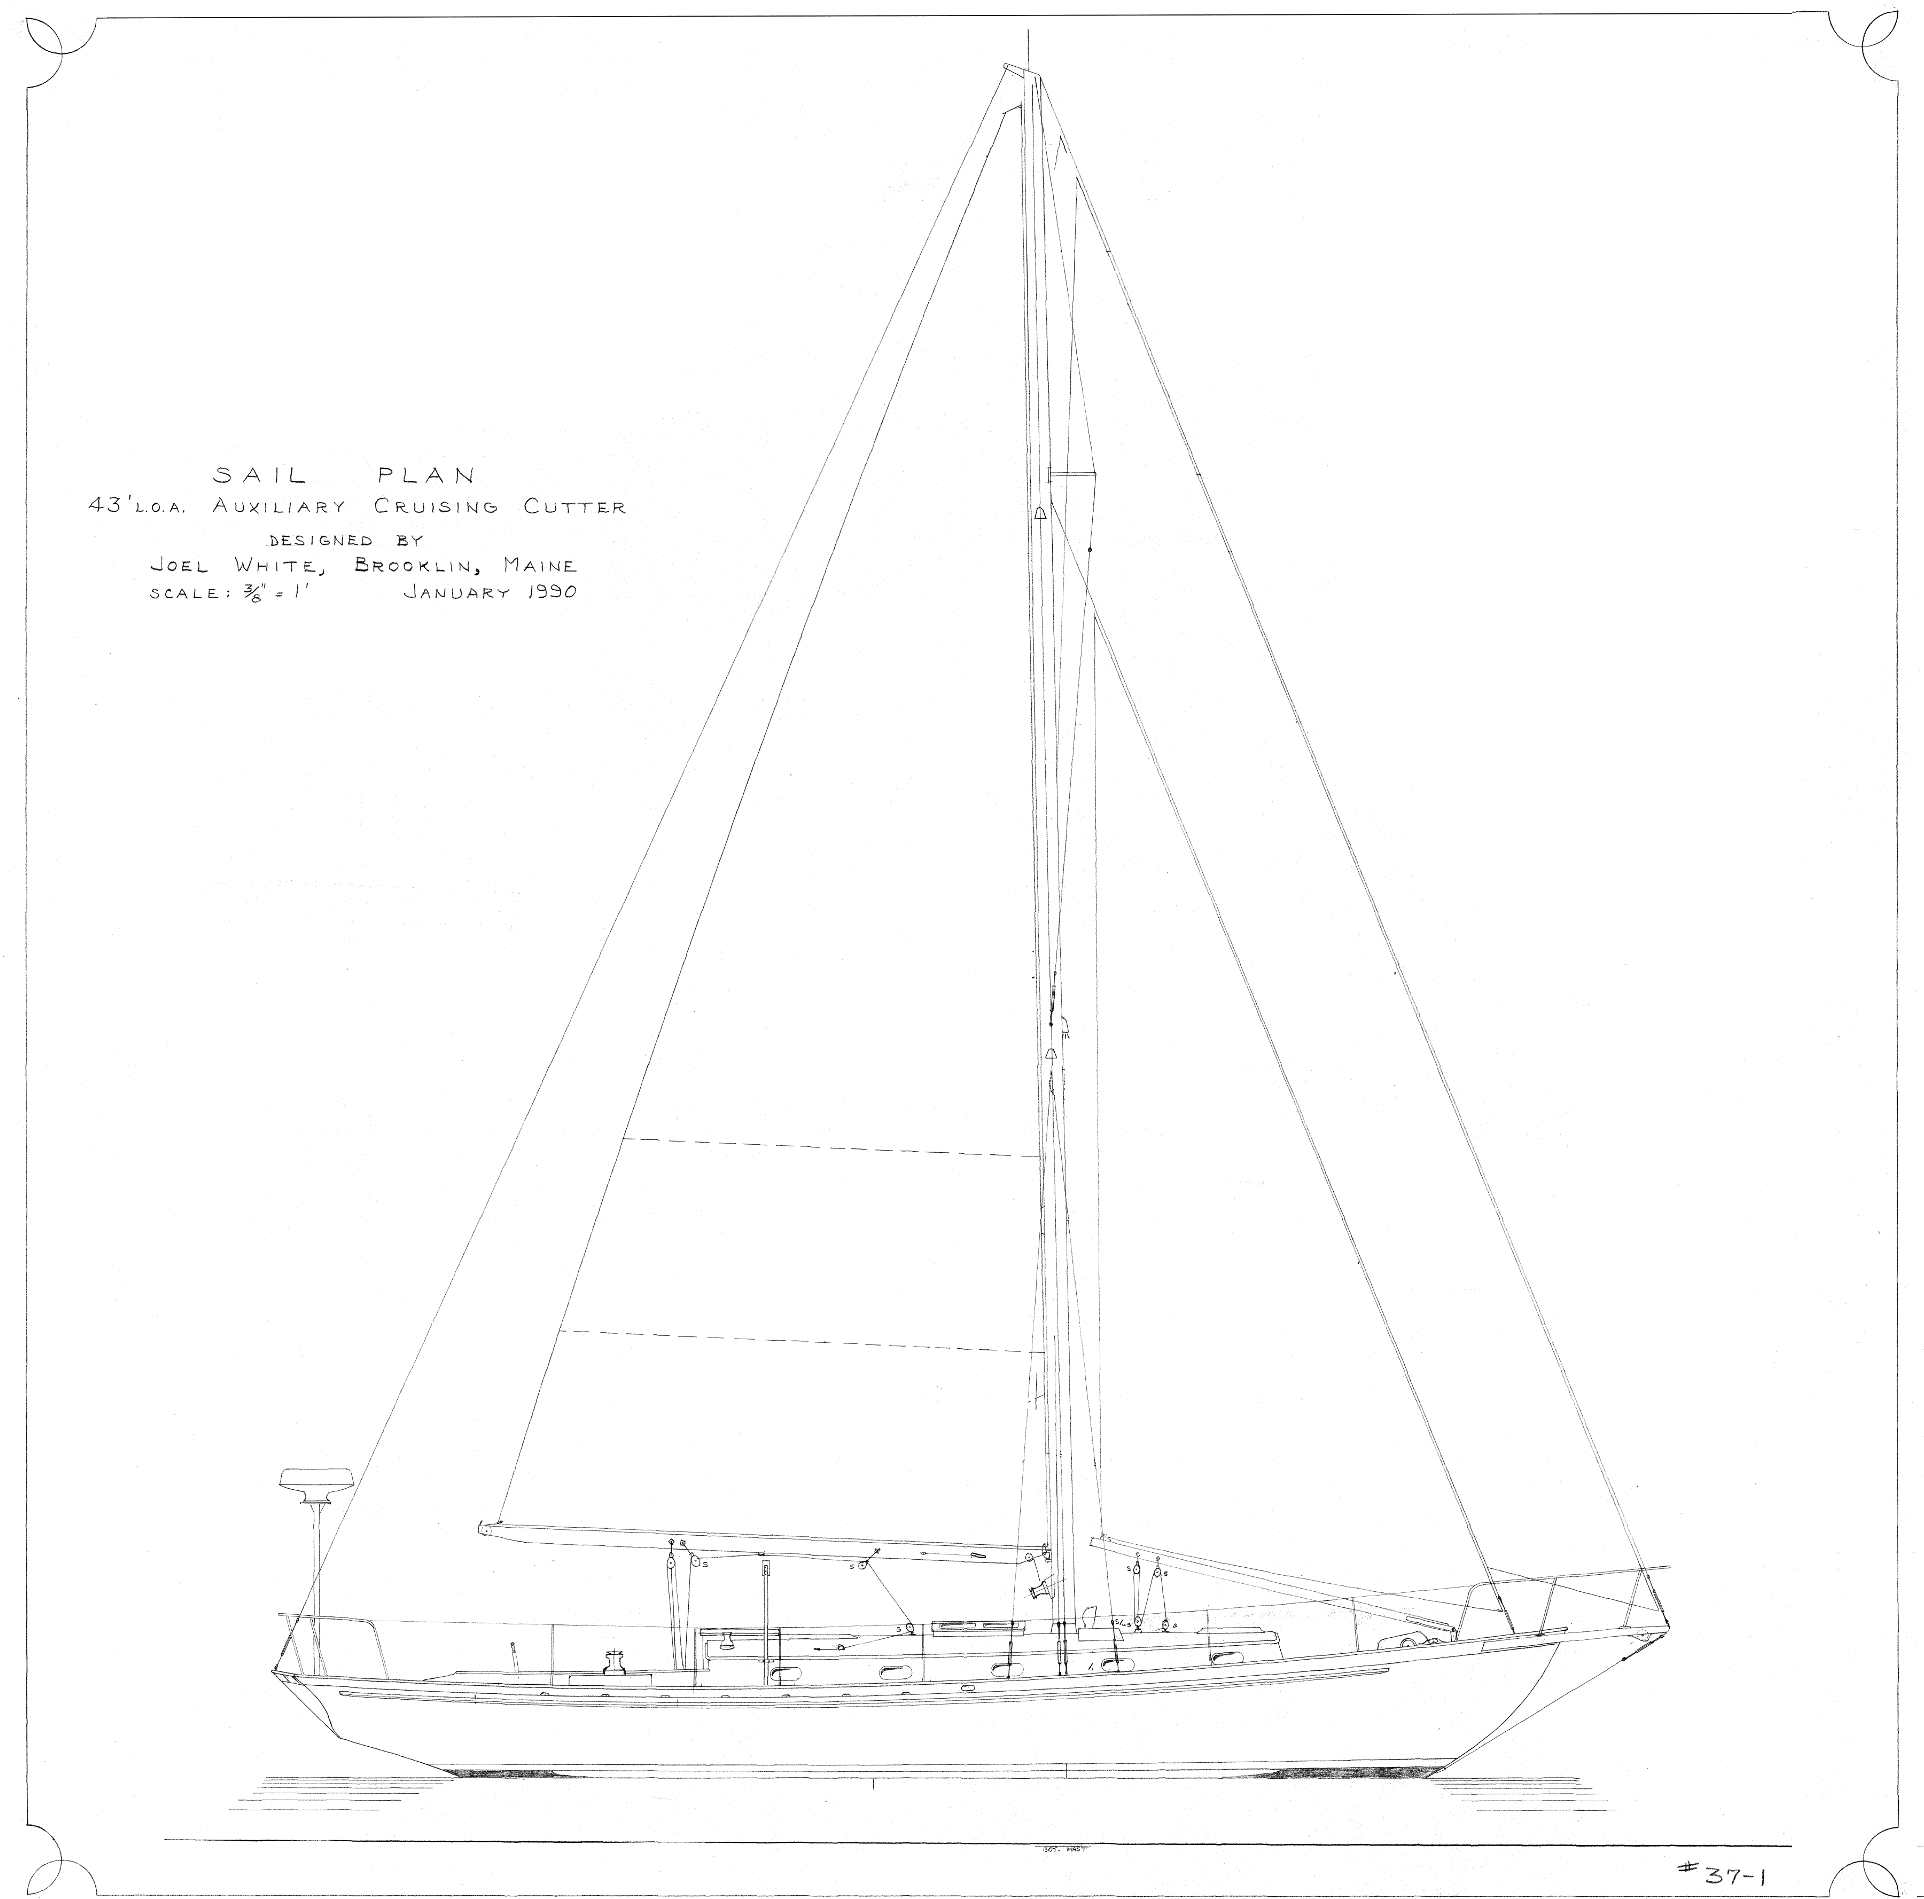 43' Sweet Olive Cutter JW#37 sailplan update2